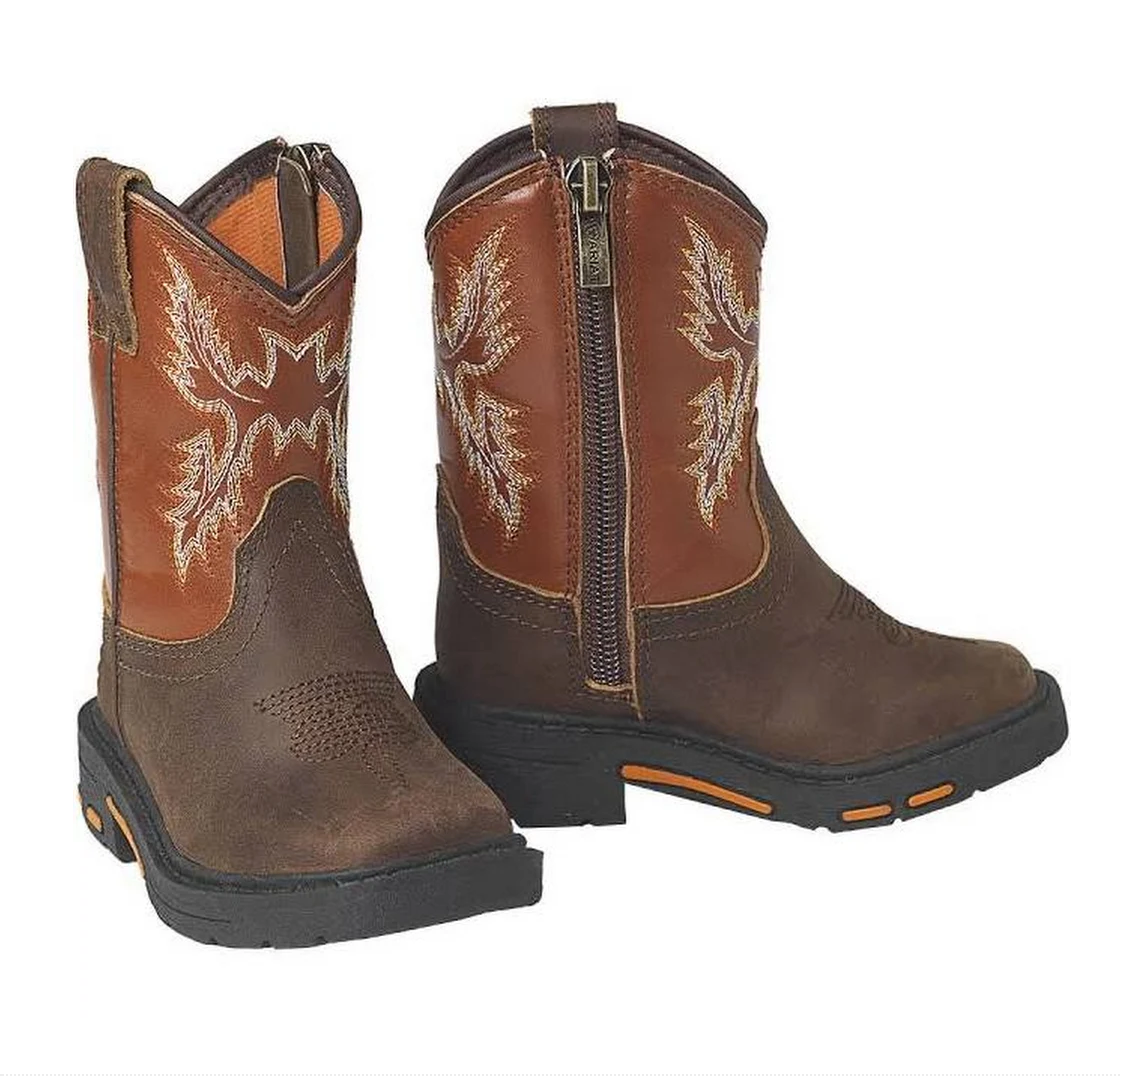 Ariat Kids Chandler Brown Lil' Stompers Boot KIDS - Boys - Footwear - Boots M&F WESTERN PRODUCTS Teskeys